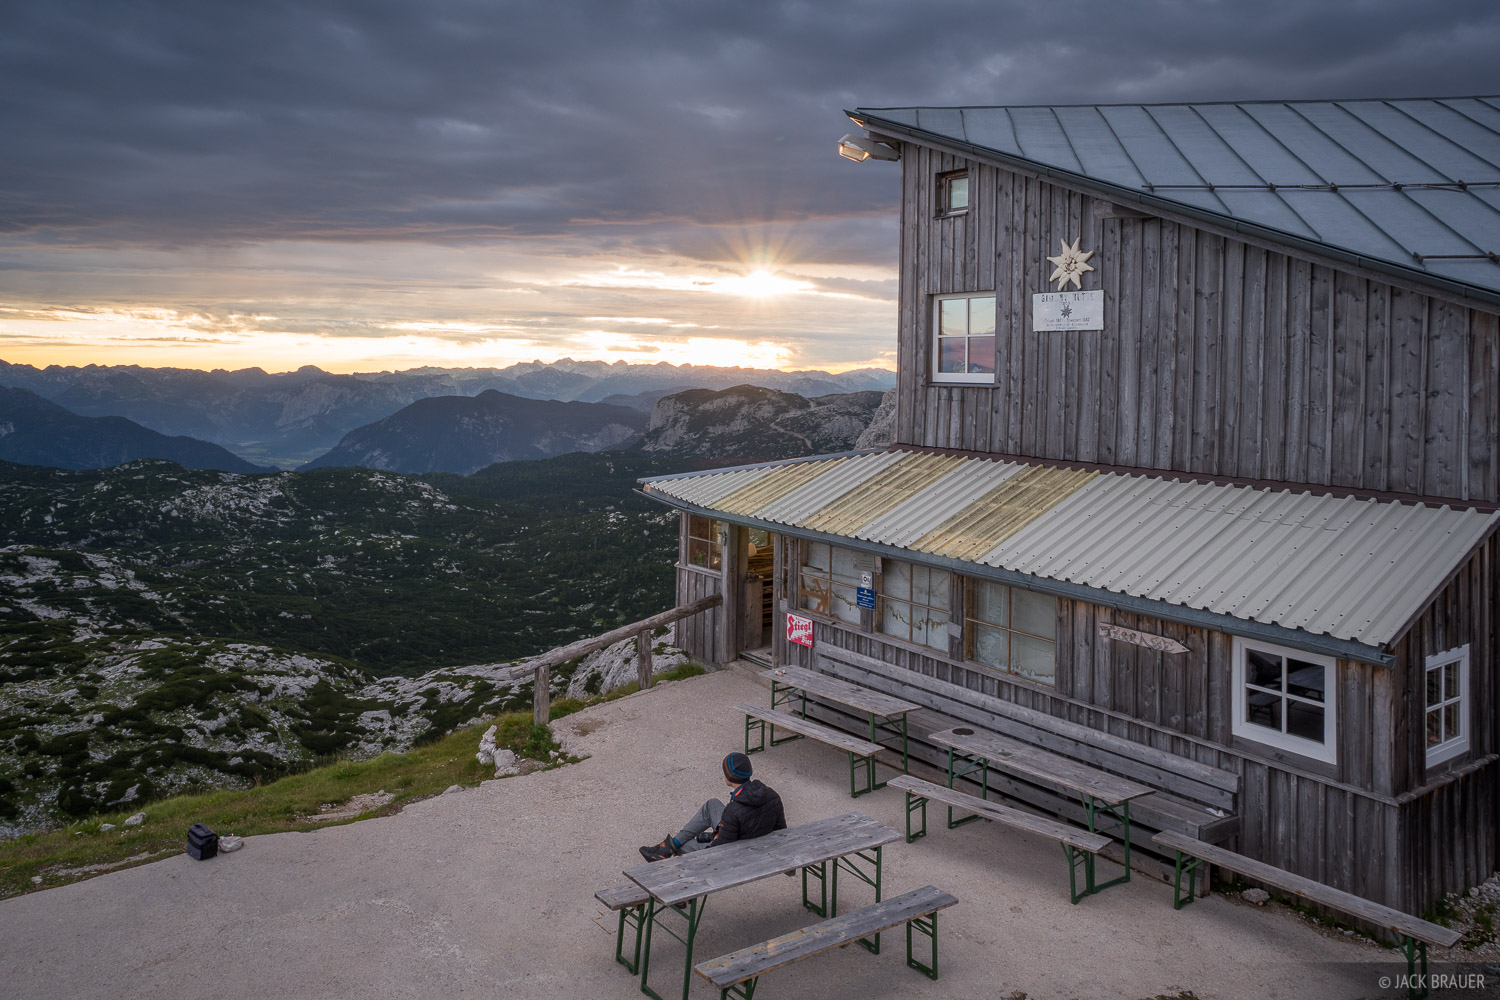 Austria, Dachstein, Simony Hütte, hut, Alps, photo